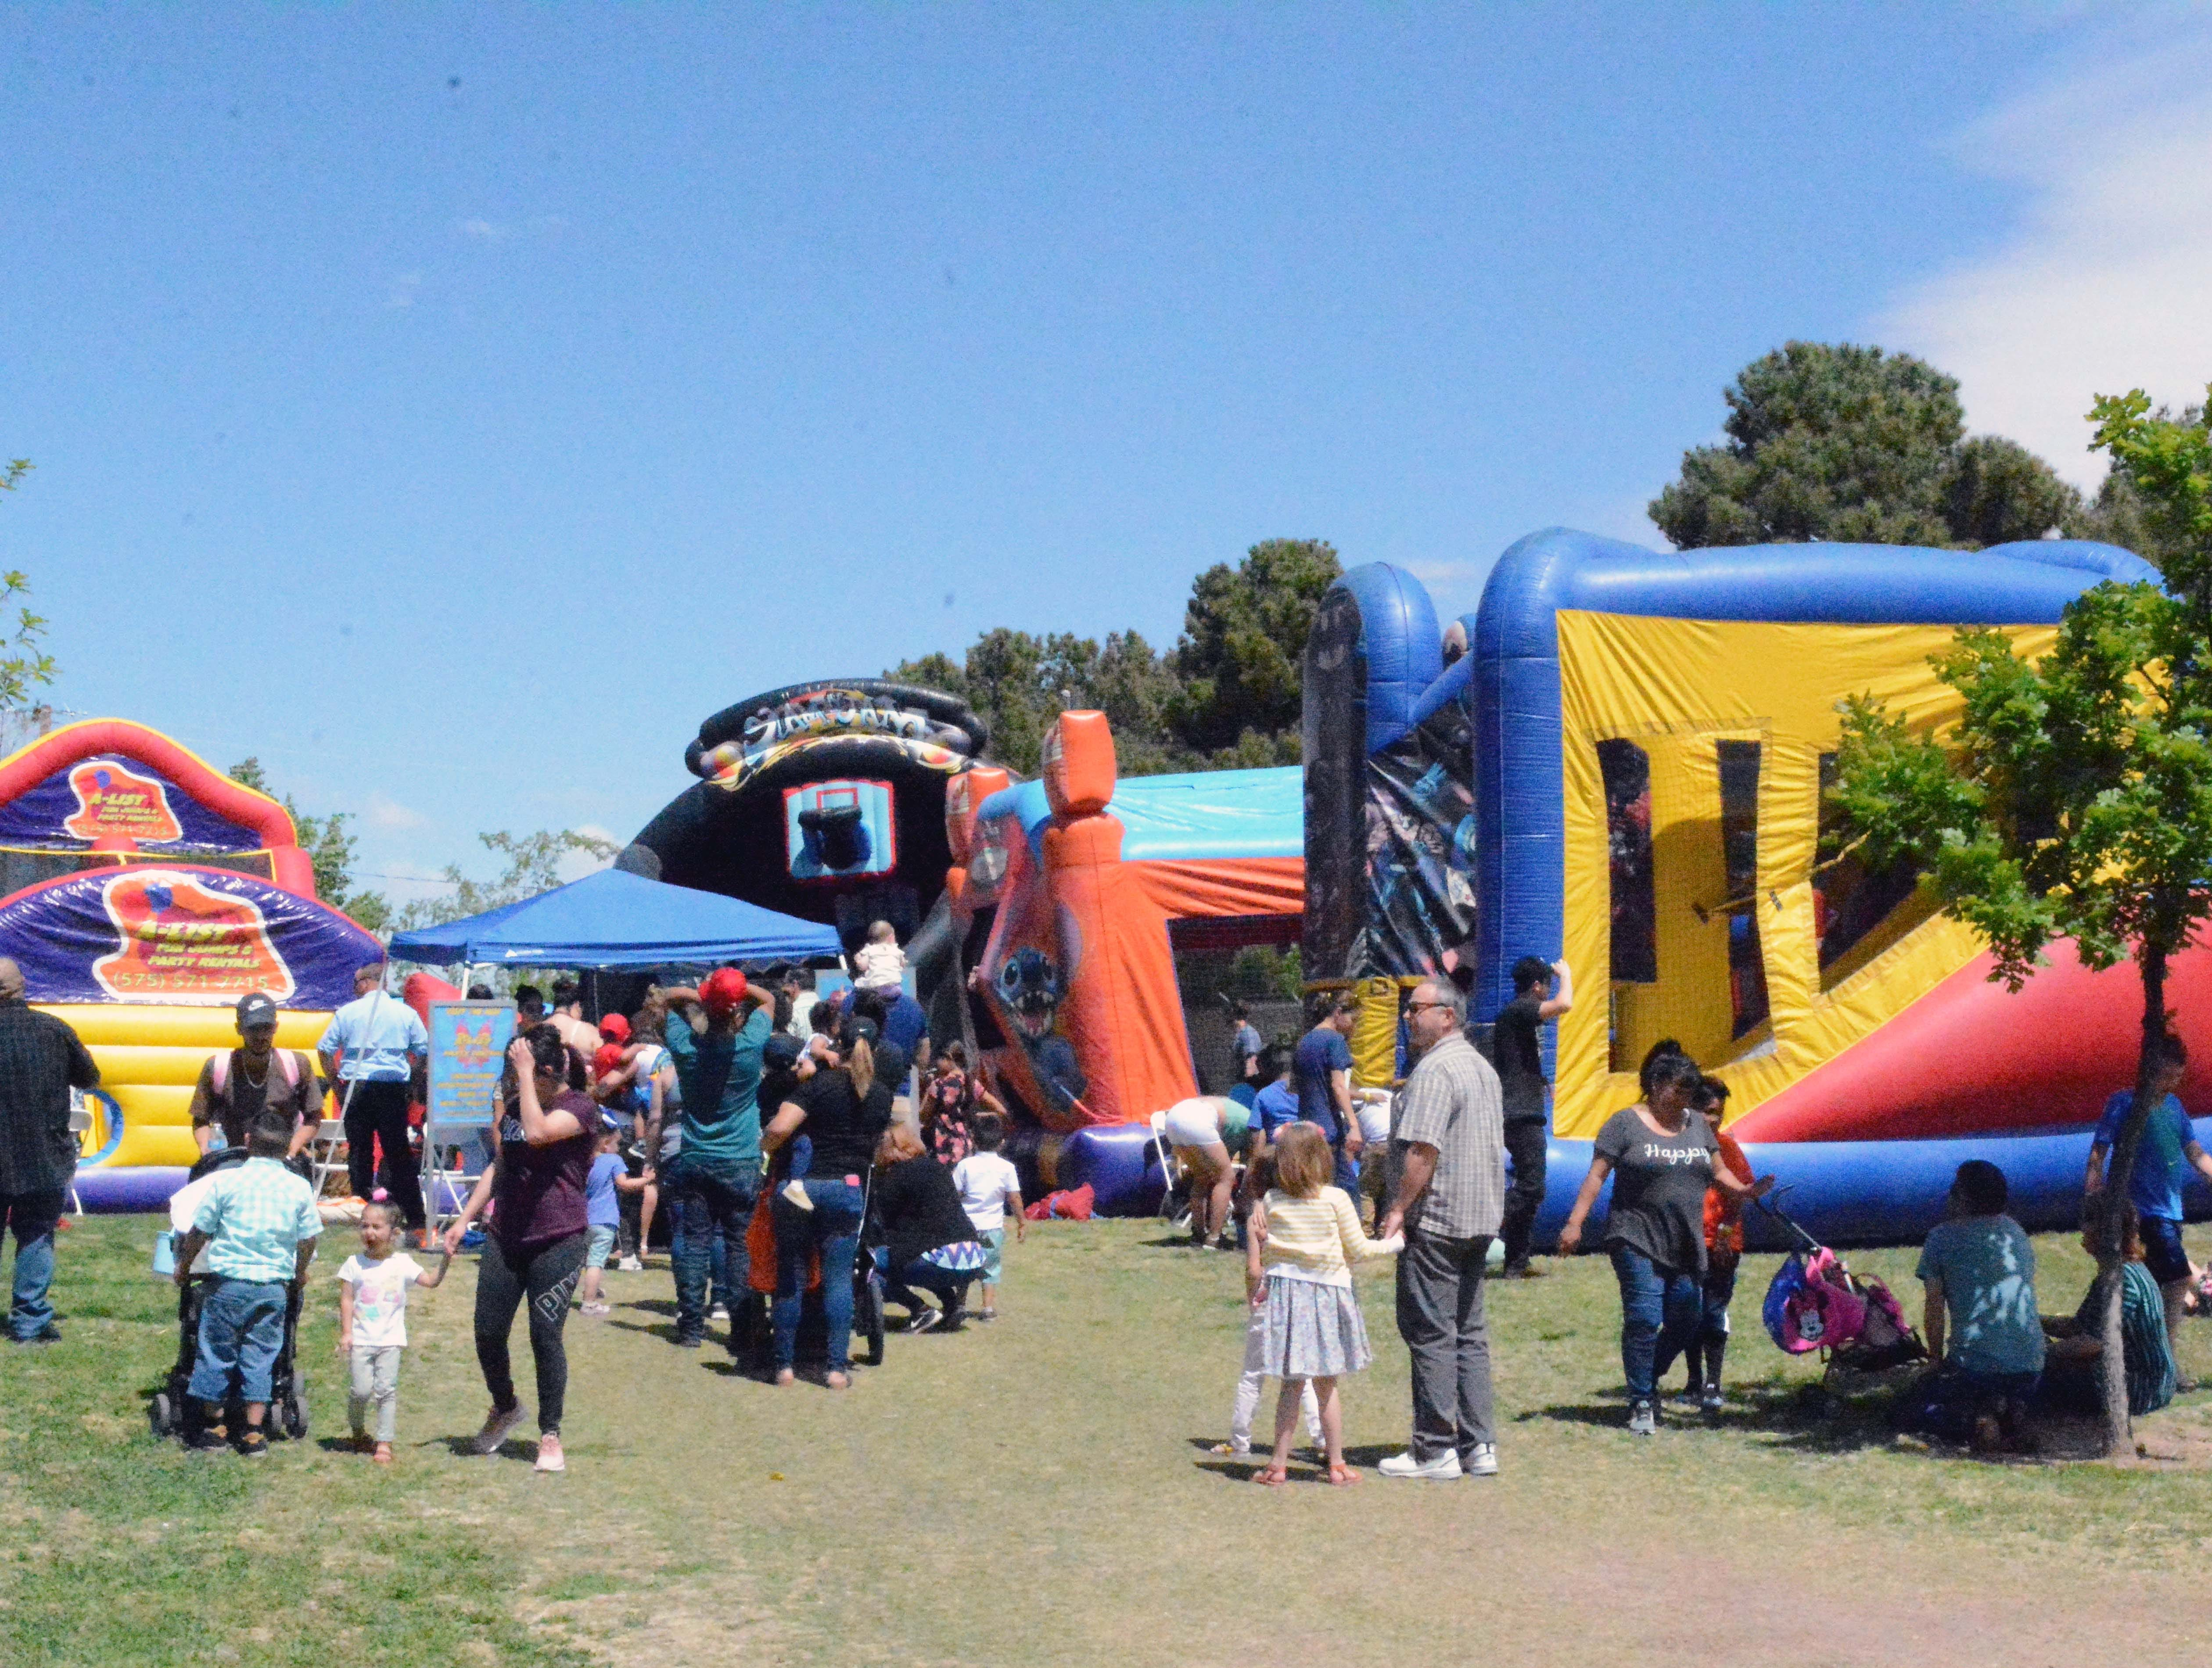 A line forms for the inflatable play area during SpringFest at Young Park on Saturday, April 20, 2019.